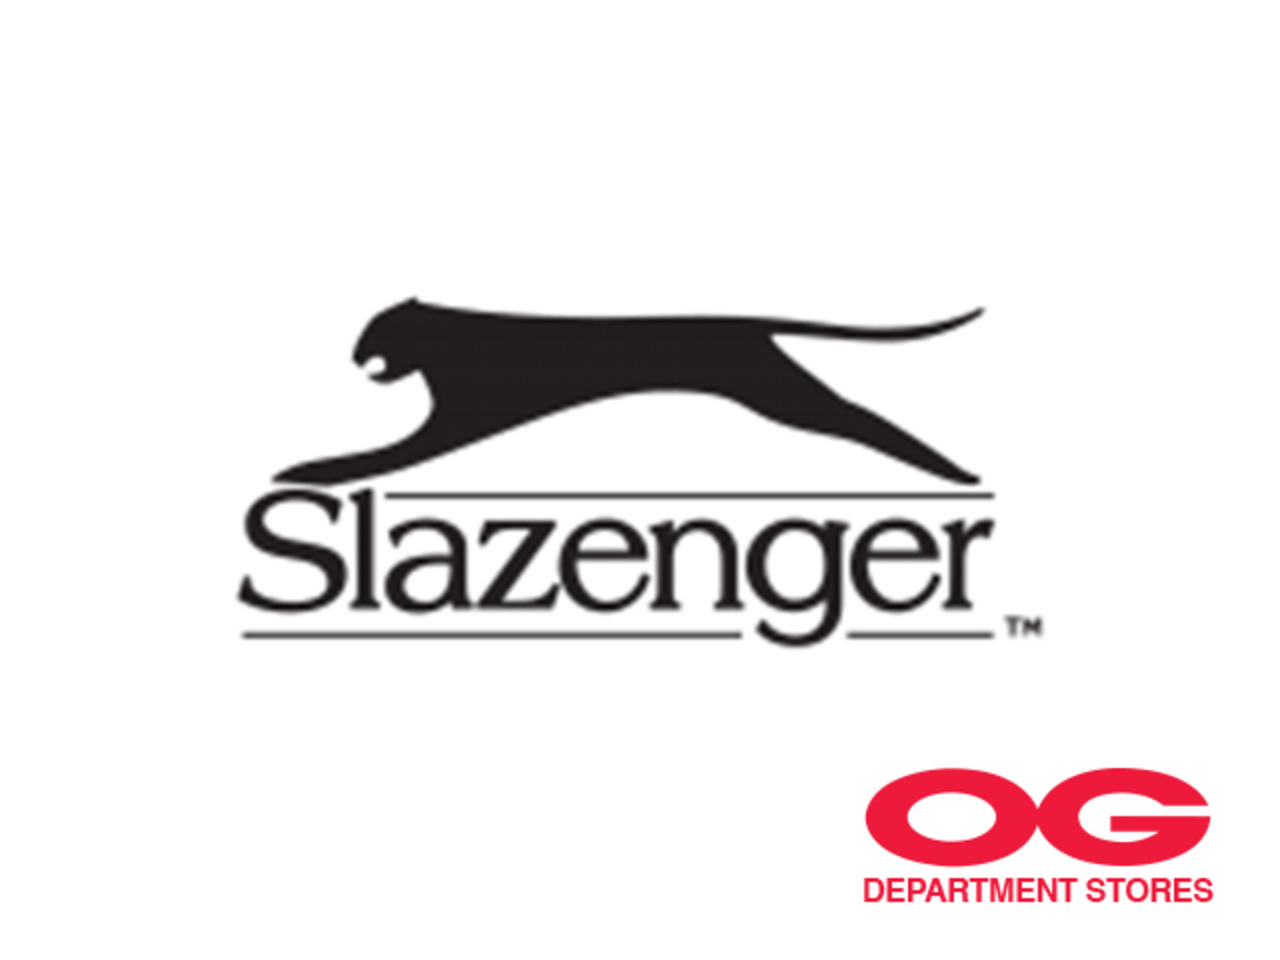 SLAZENGER All Regular-Priced Travel Accessories @ 30% off